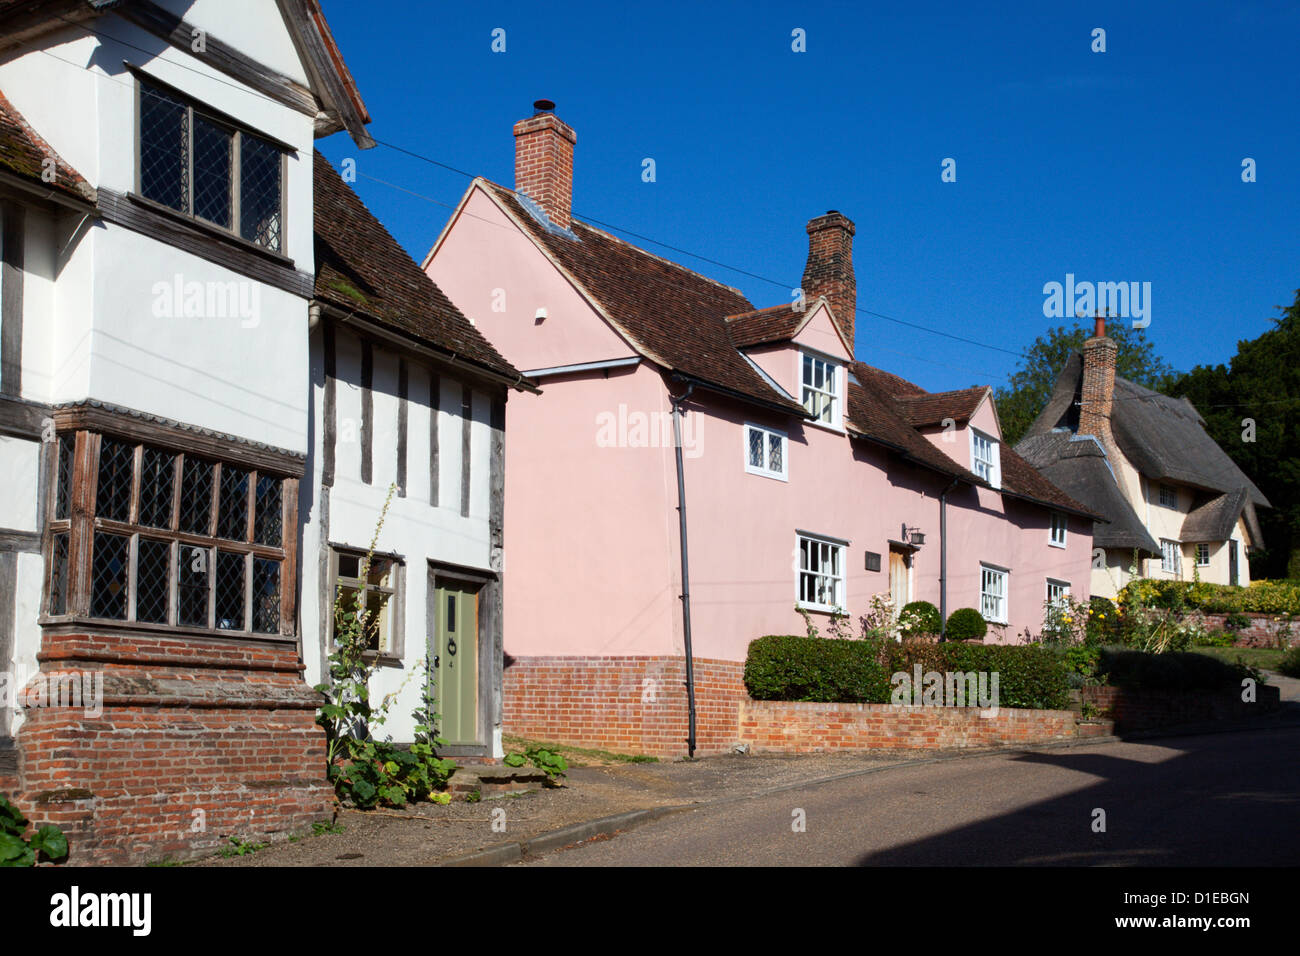 Cottages at Kersey, Suffolk, England, United Kingdom, Europe - Stock Image